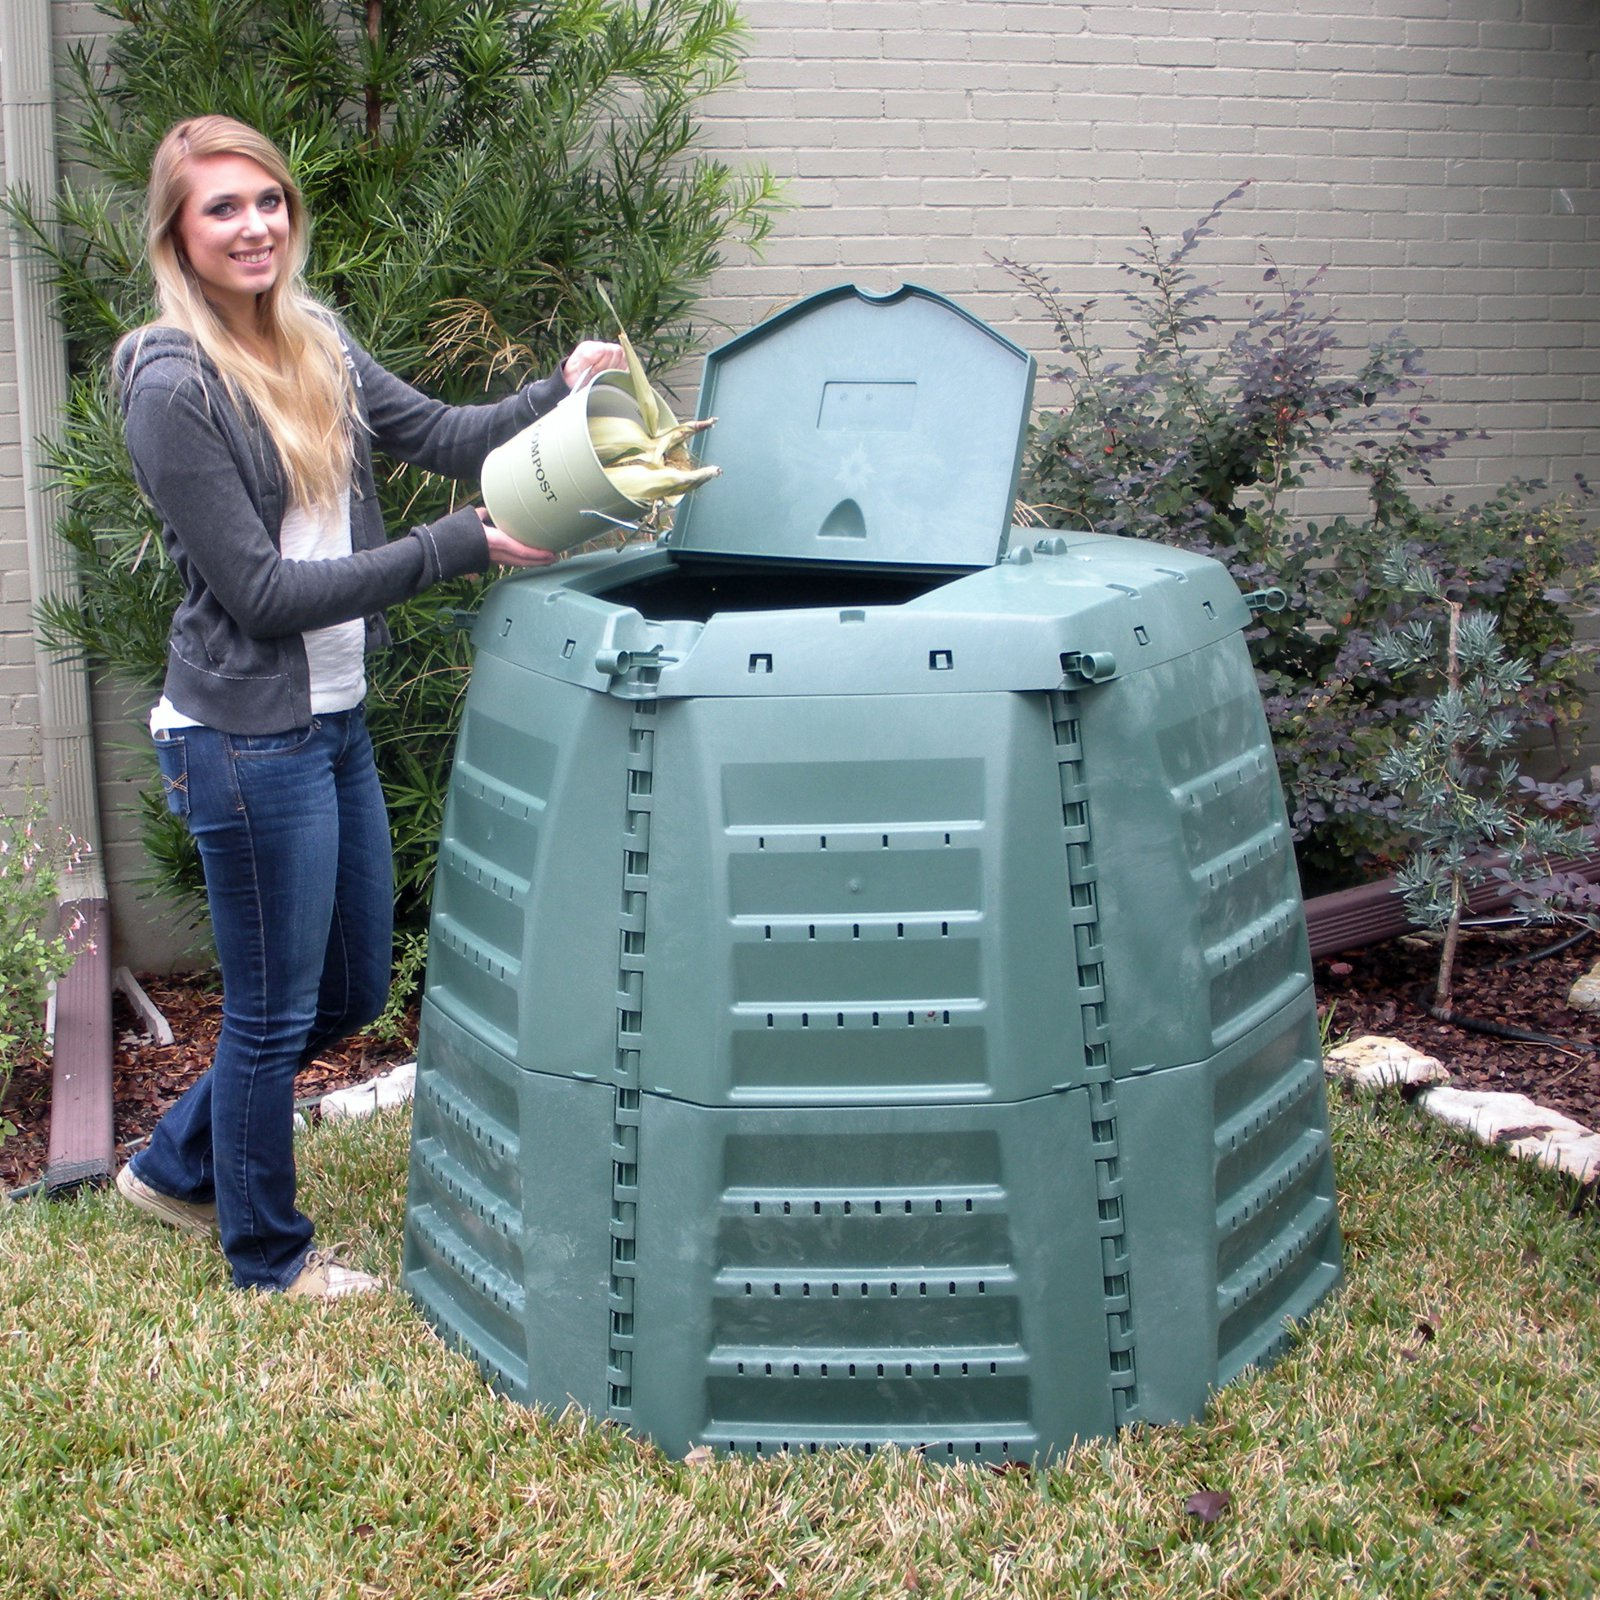 Exaco Thermo Star 1000 Recycled Plastic 267-gal. XXL Compost Bin by Exaco